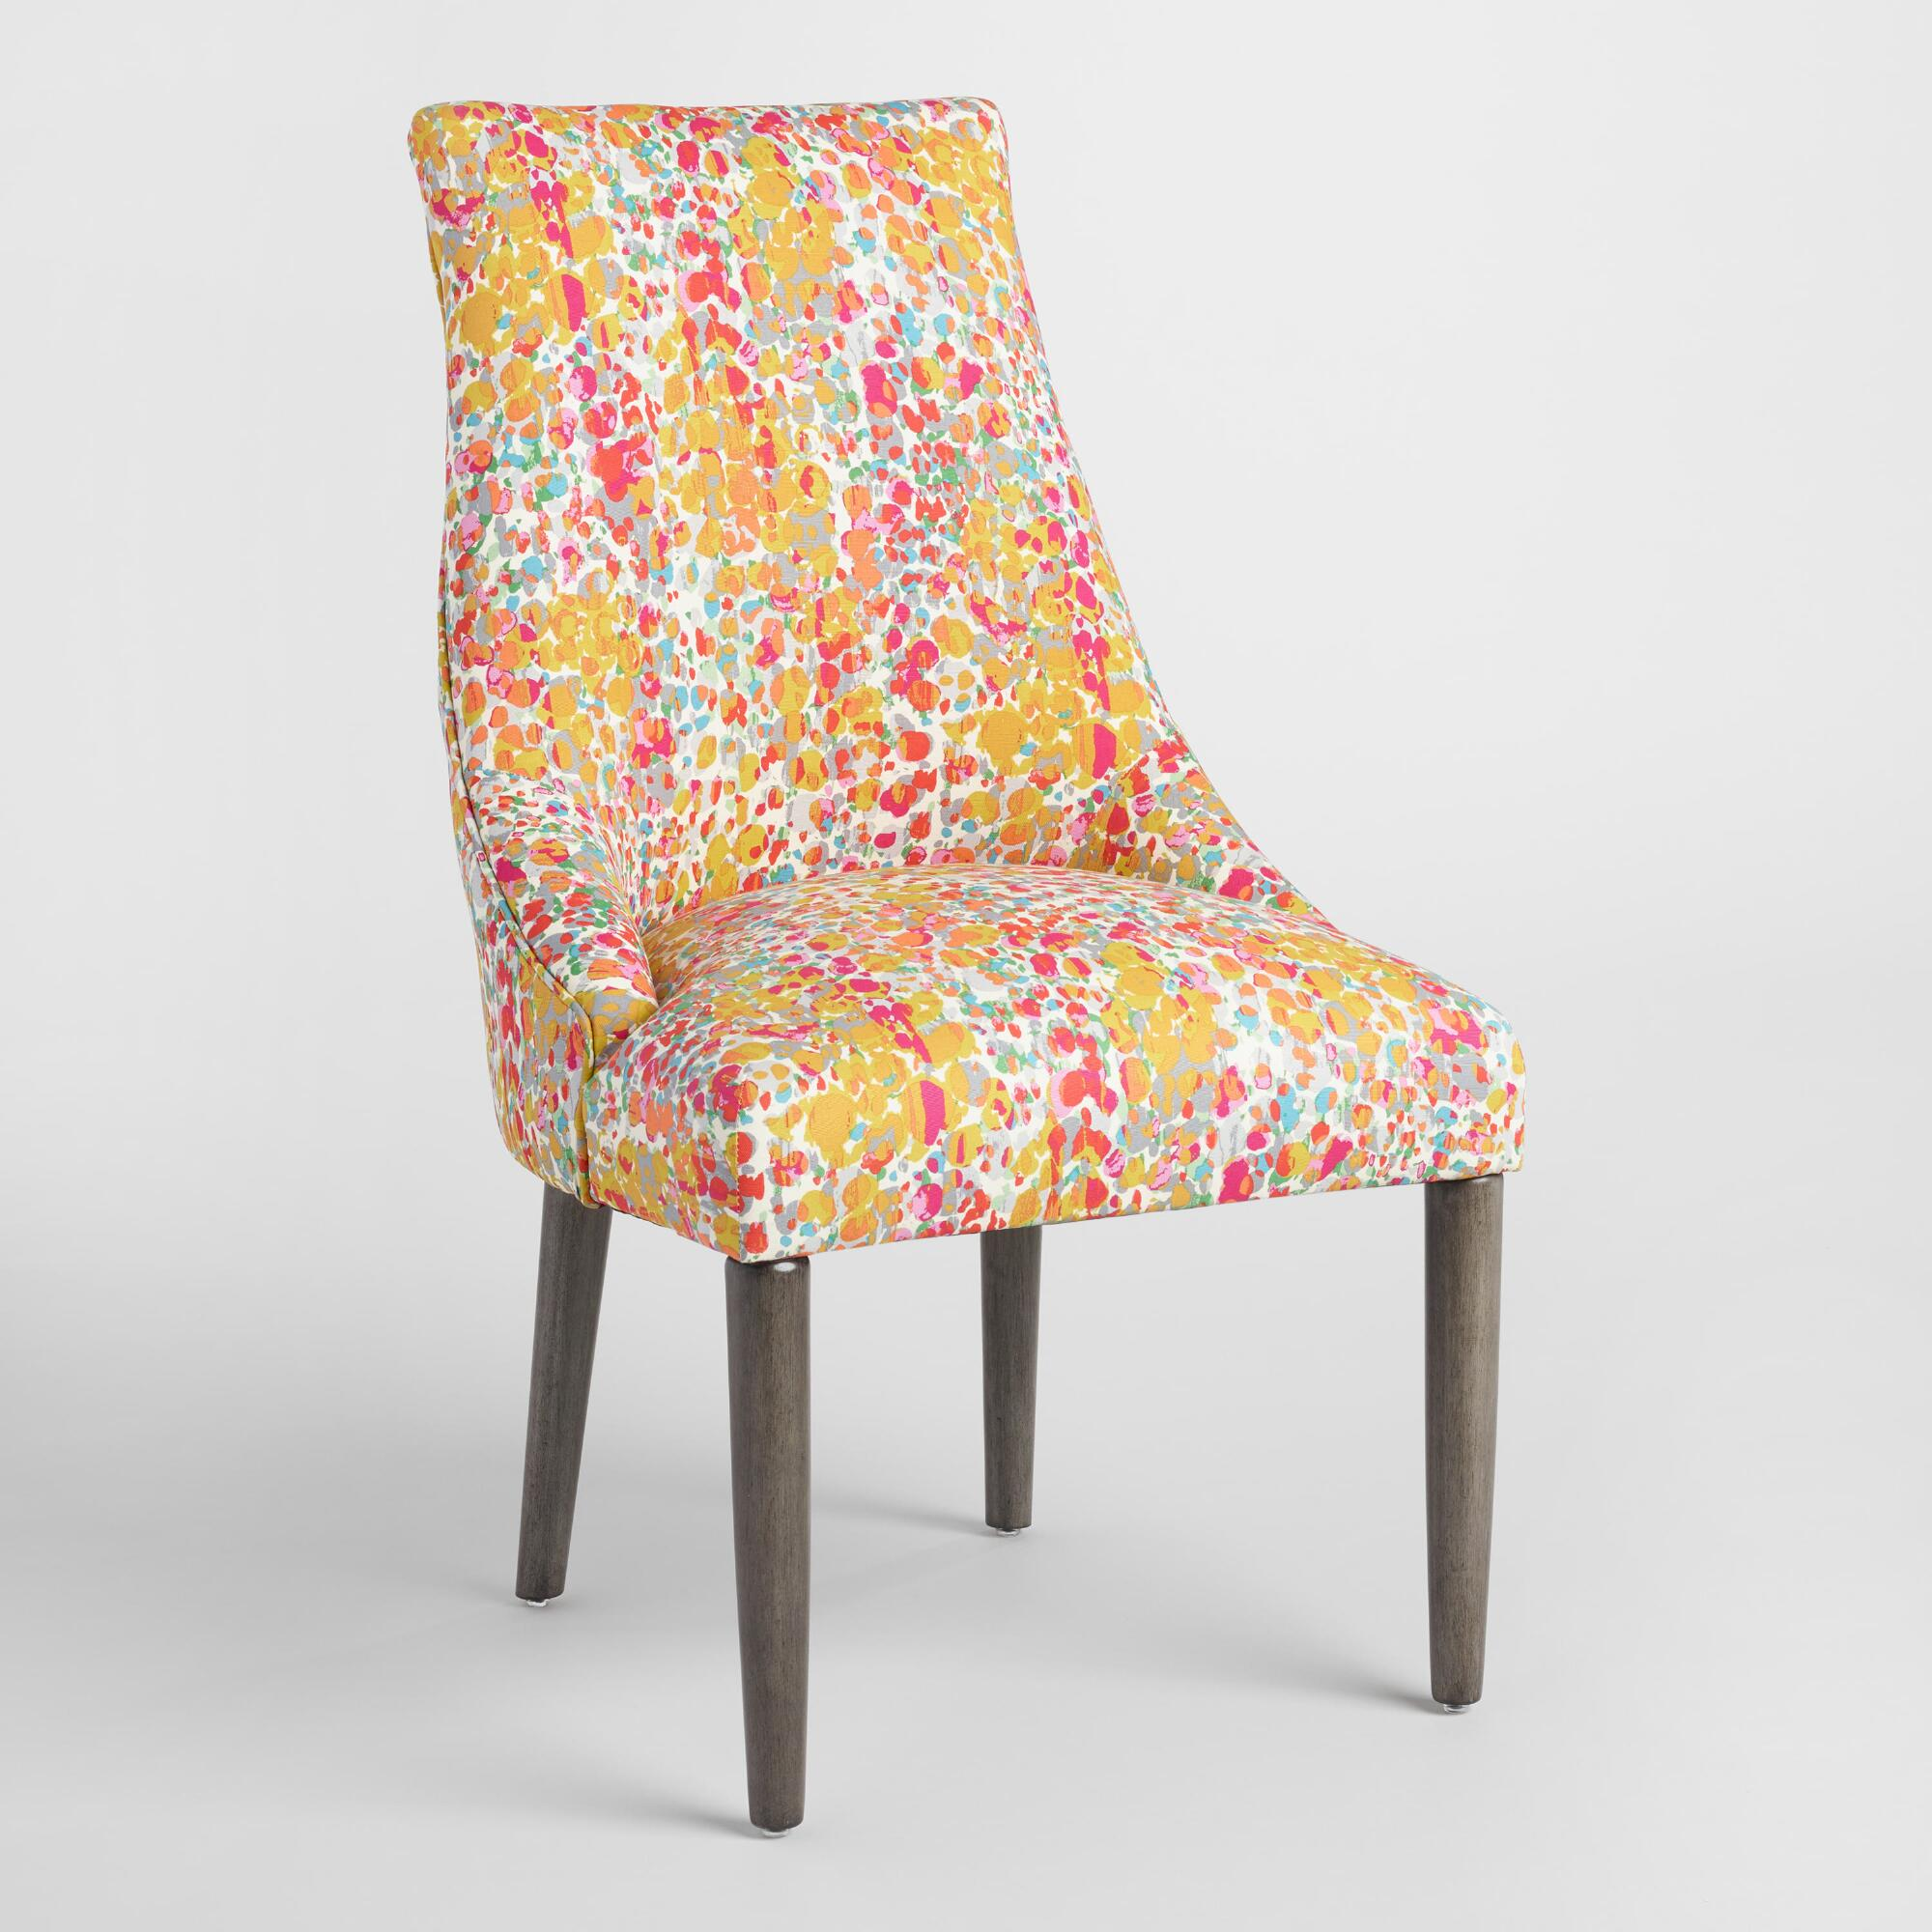 world market dining room chairs | Clarisse Portter Upholstered Dining Chairs Set of 2 ...